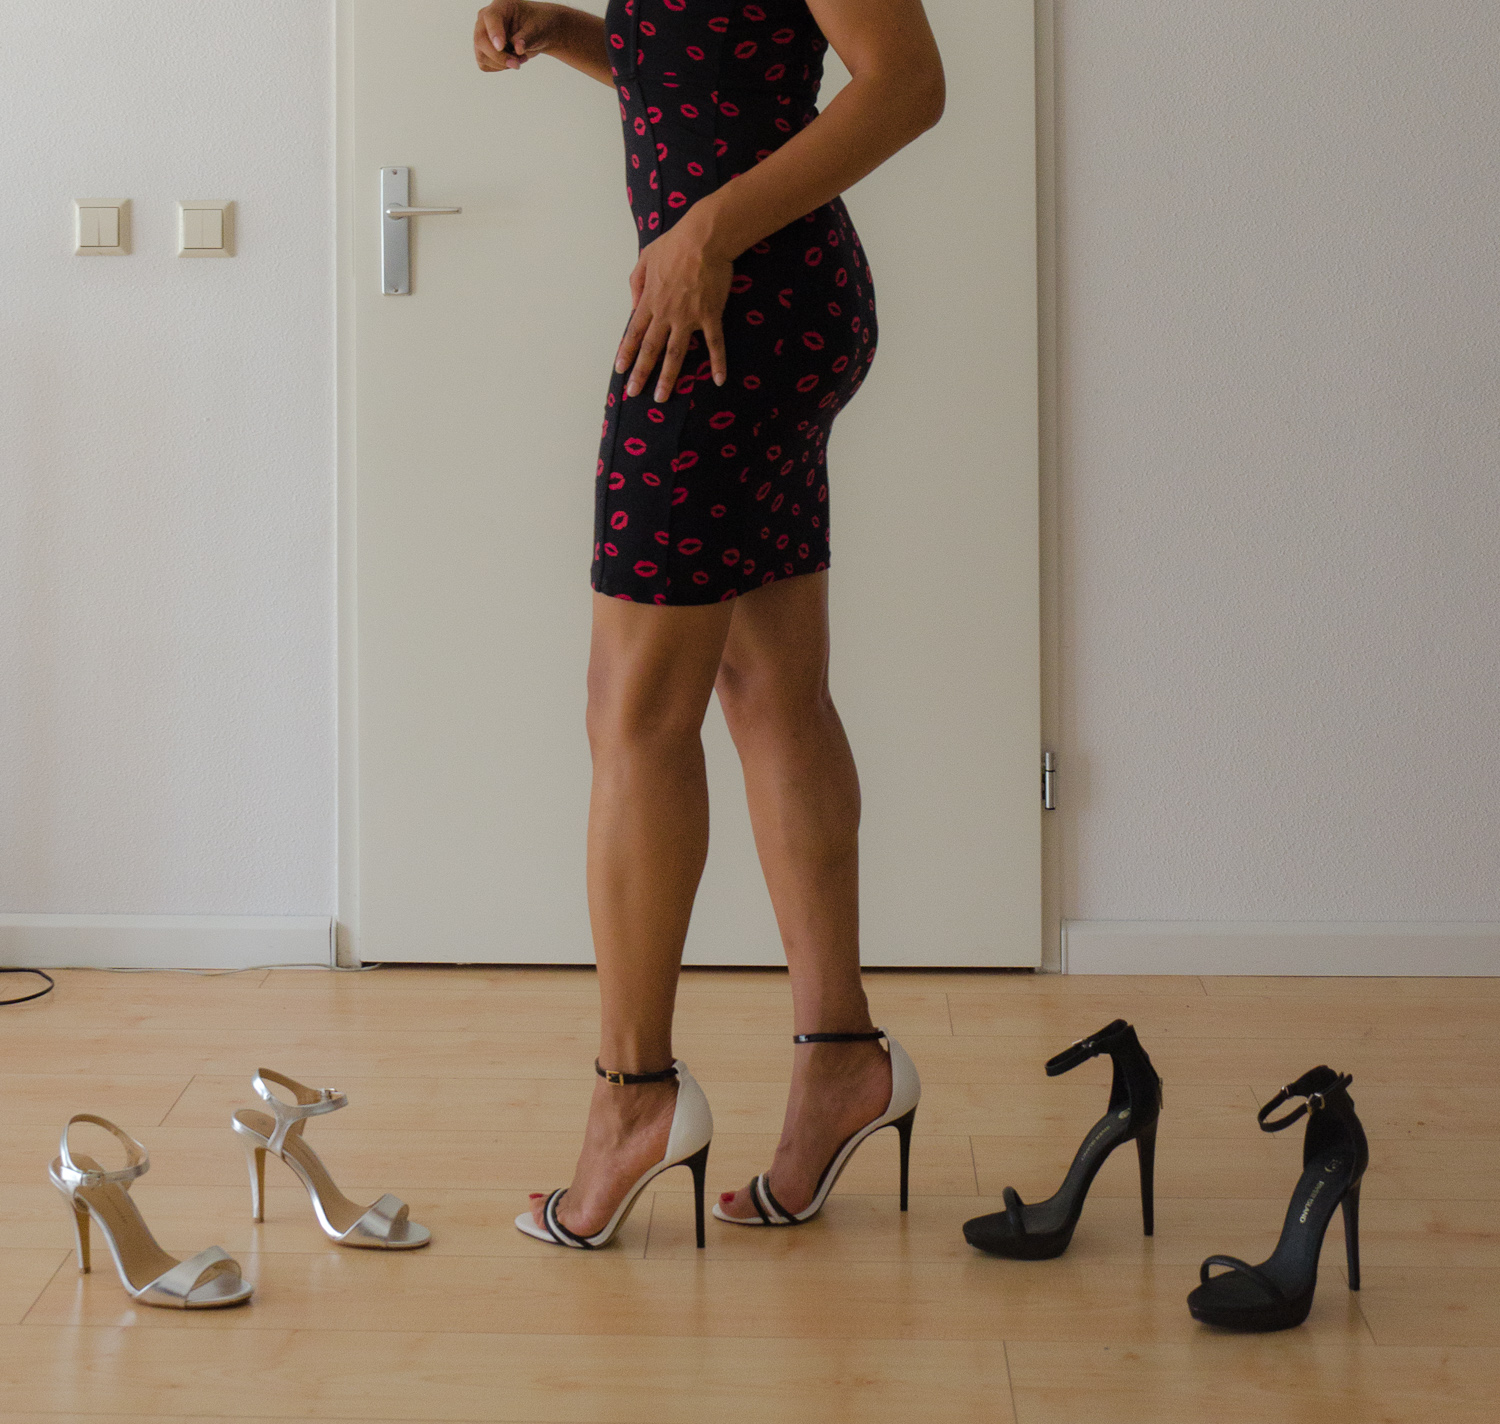 how to clean my heels